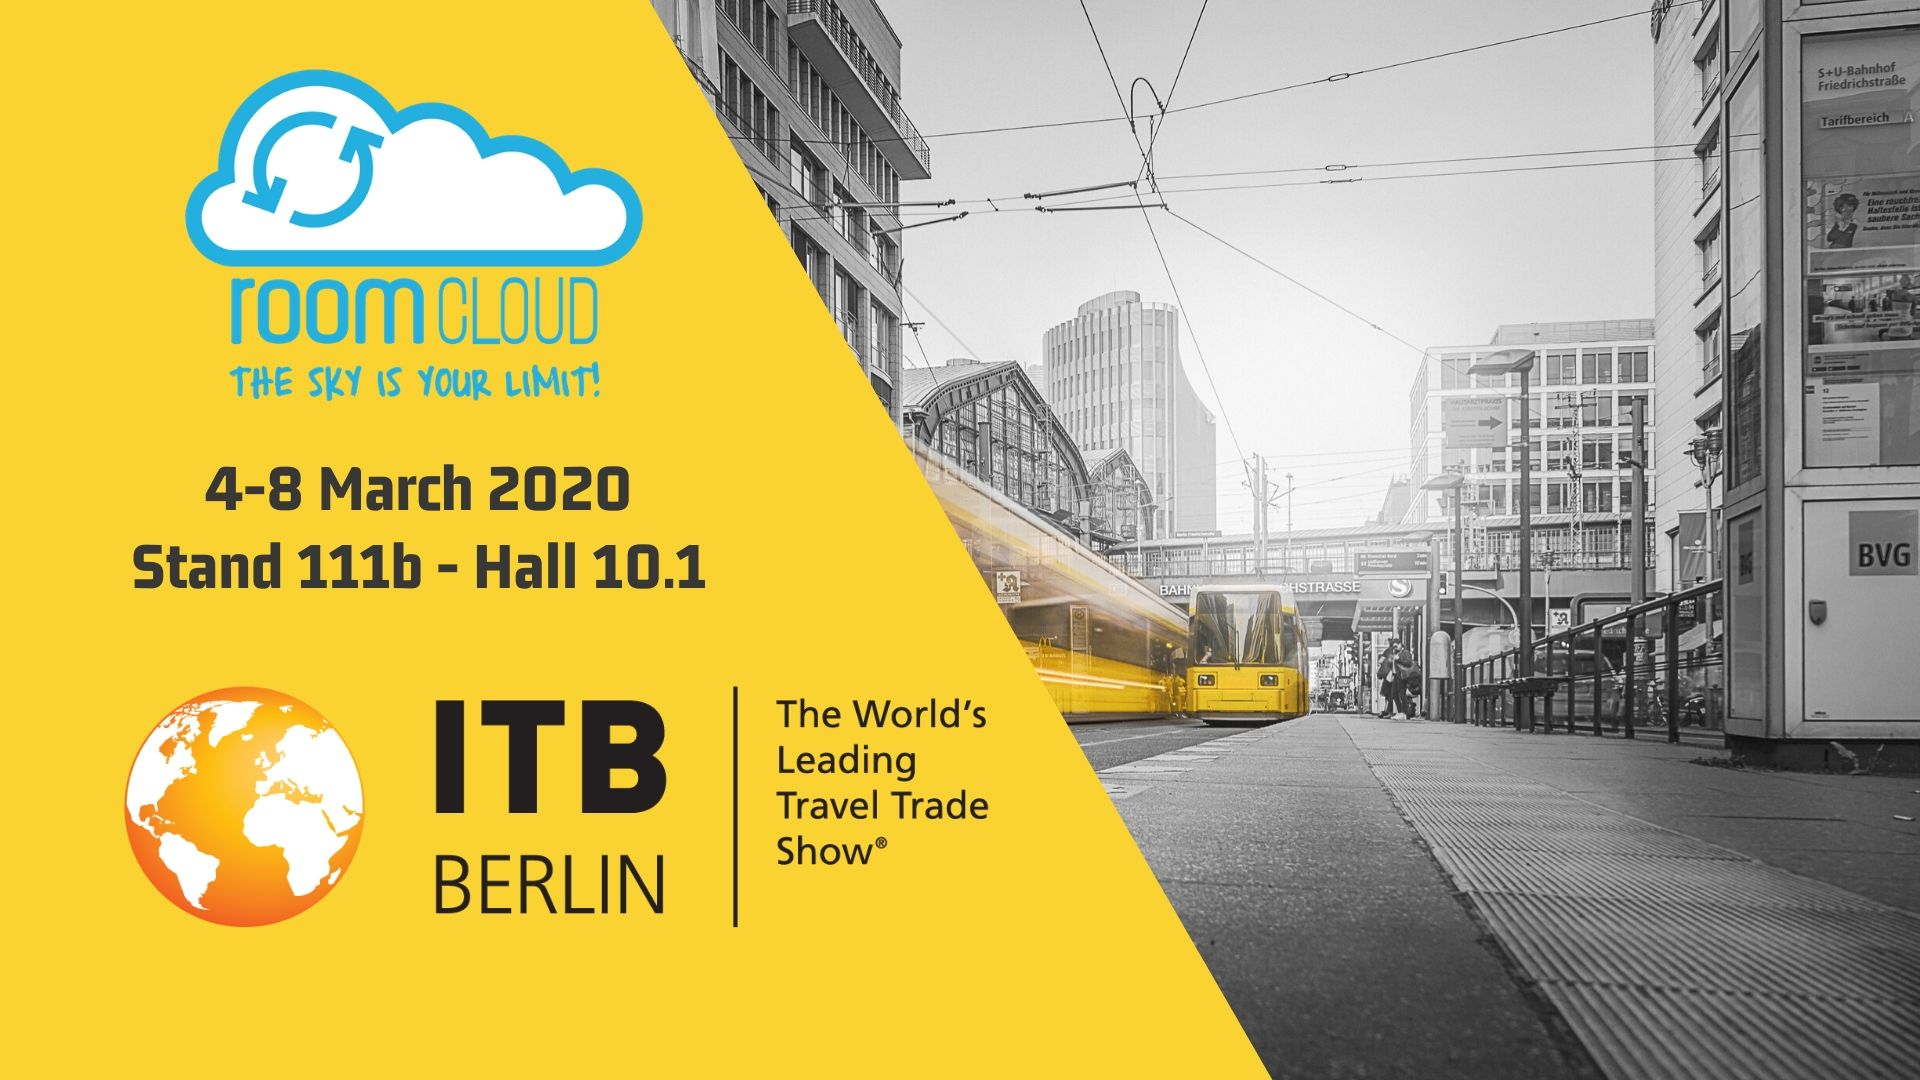 RoomCloud awaits you at ITB Berlin